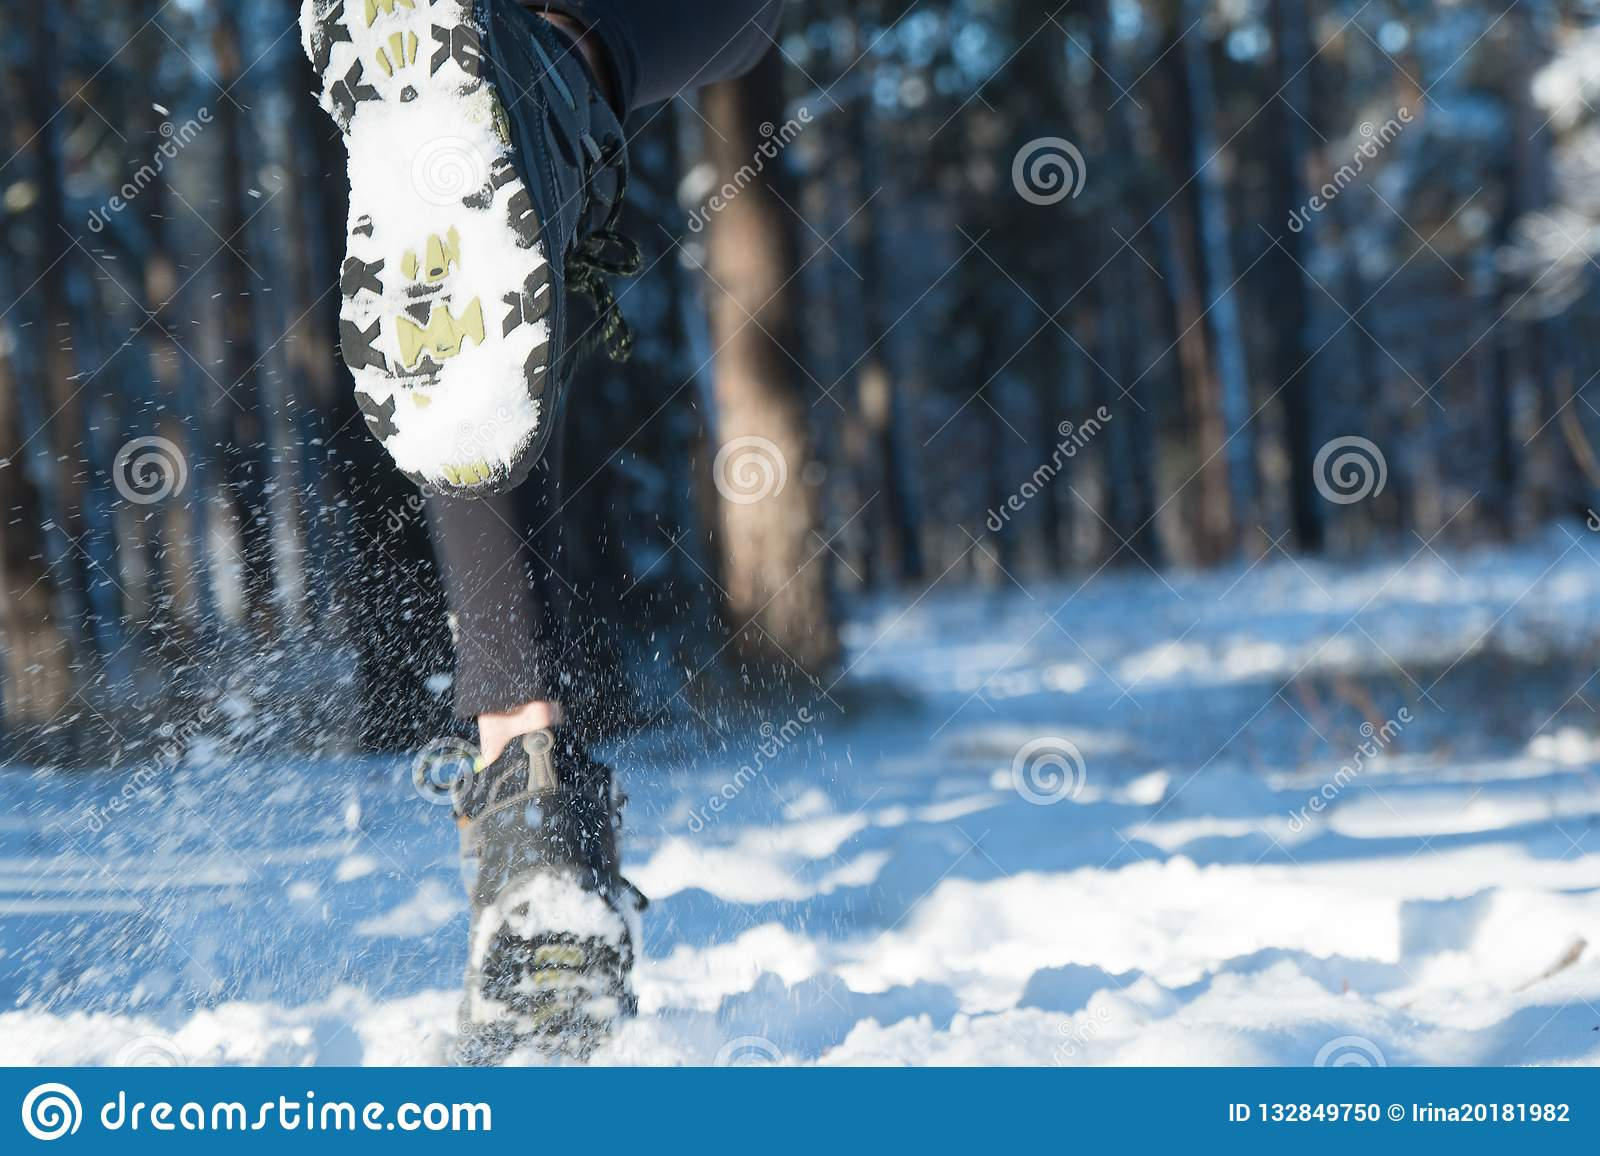 Jogging in winter. running through the snow. run forest snow